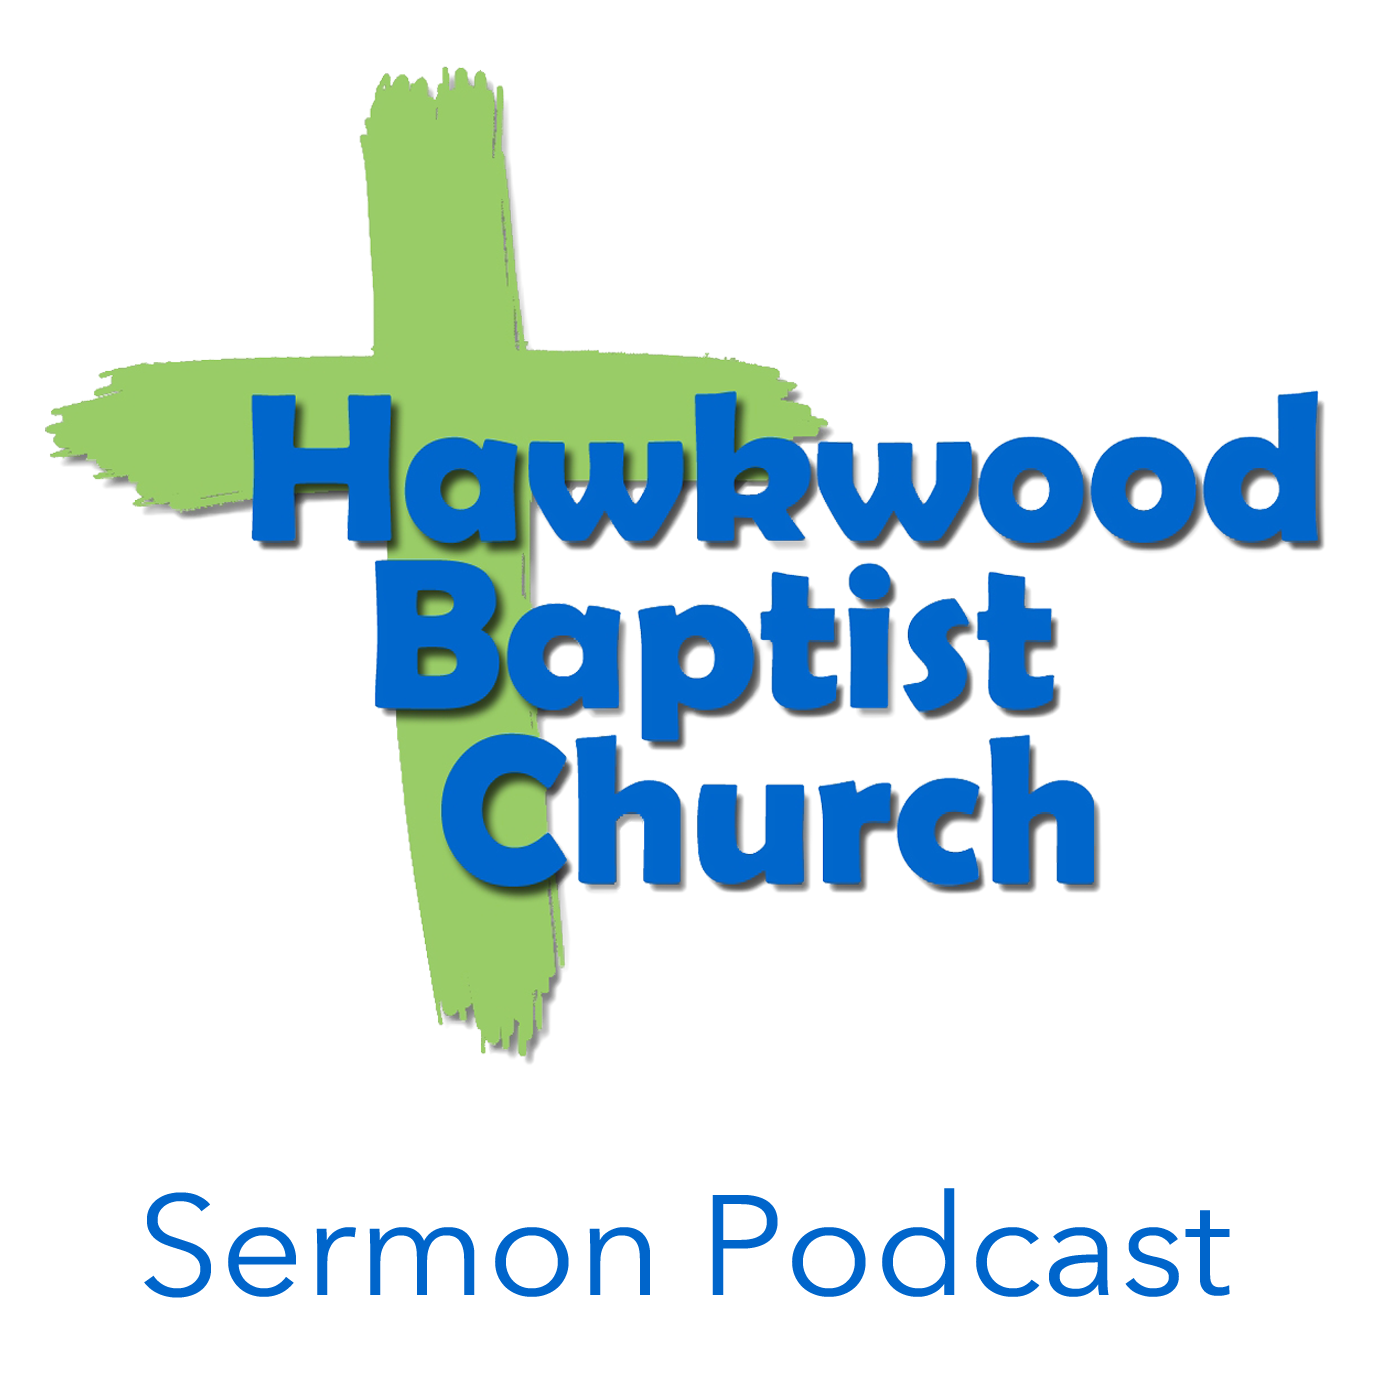 Hawkwood Baptist Church Sermon Podcast